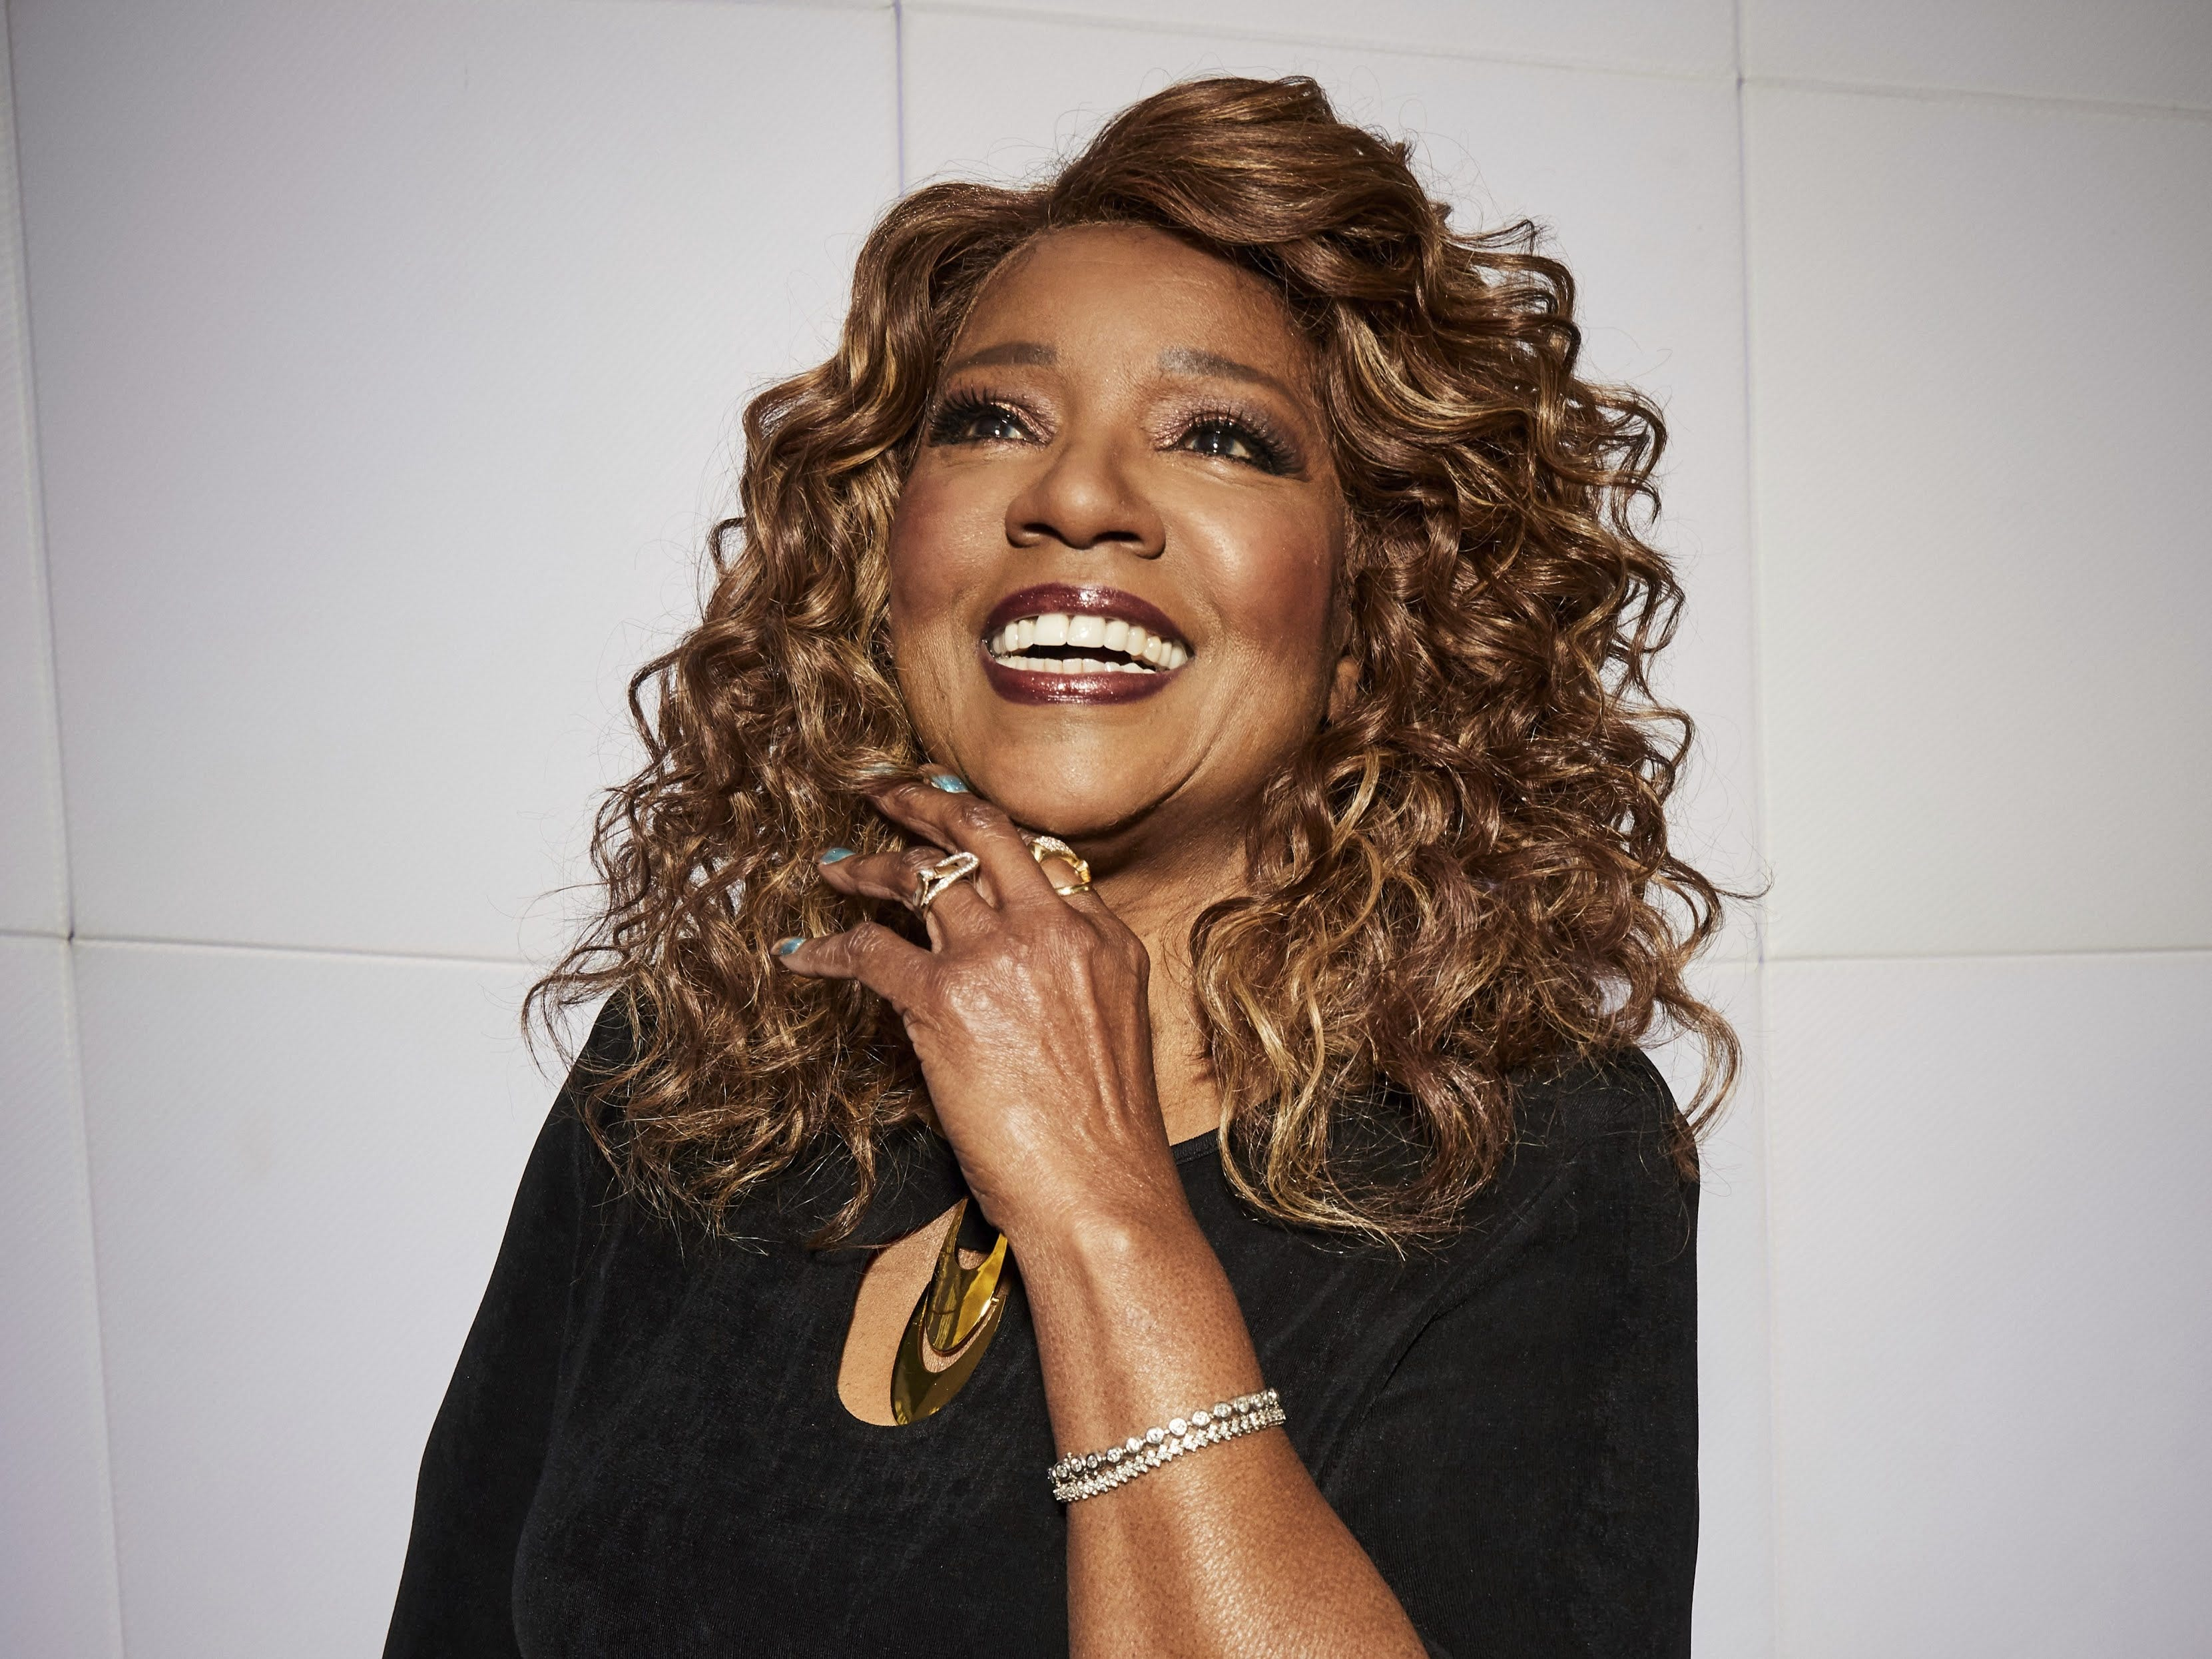 With album made for Indiana label, Gloria Gaynor ends 40-year Grammy drought